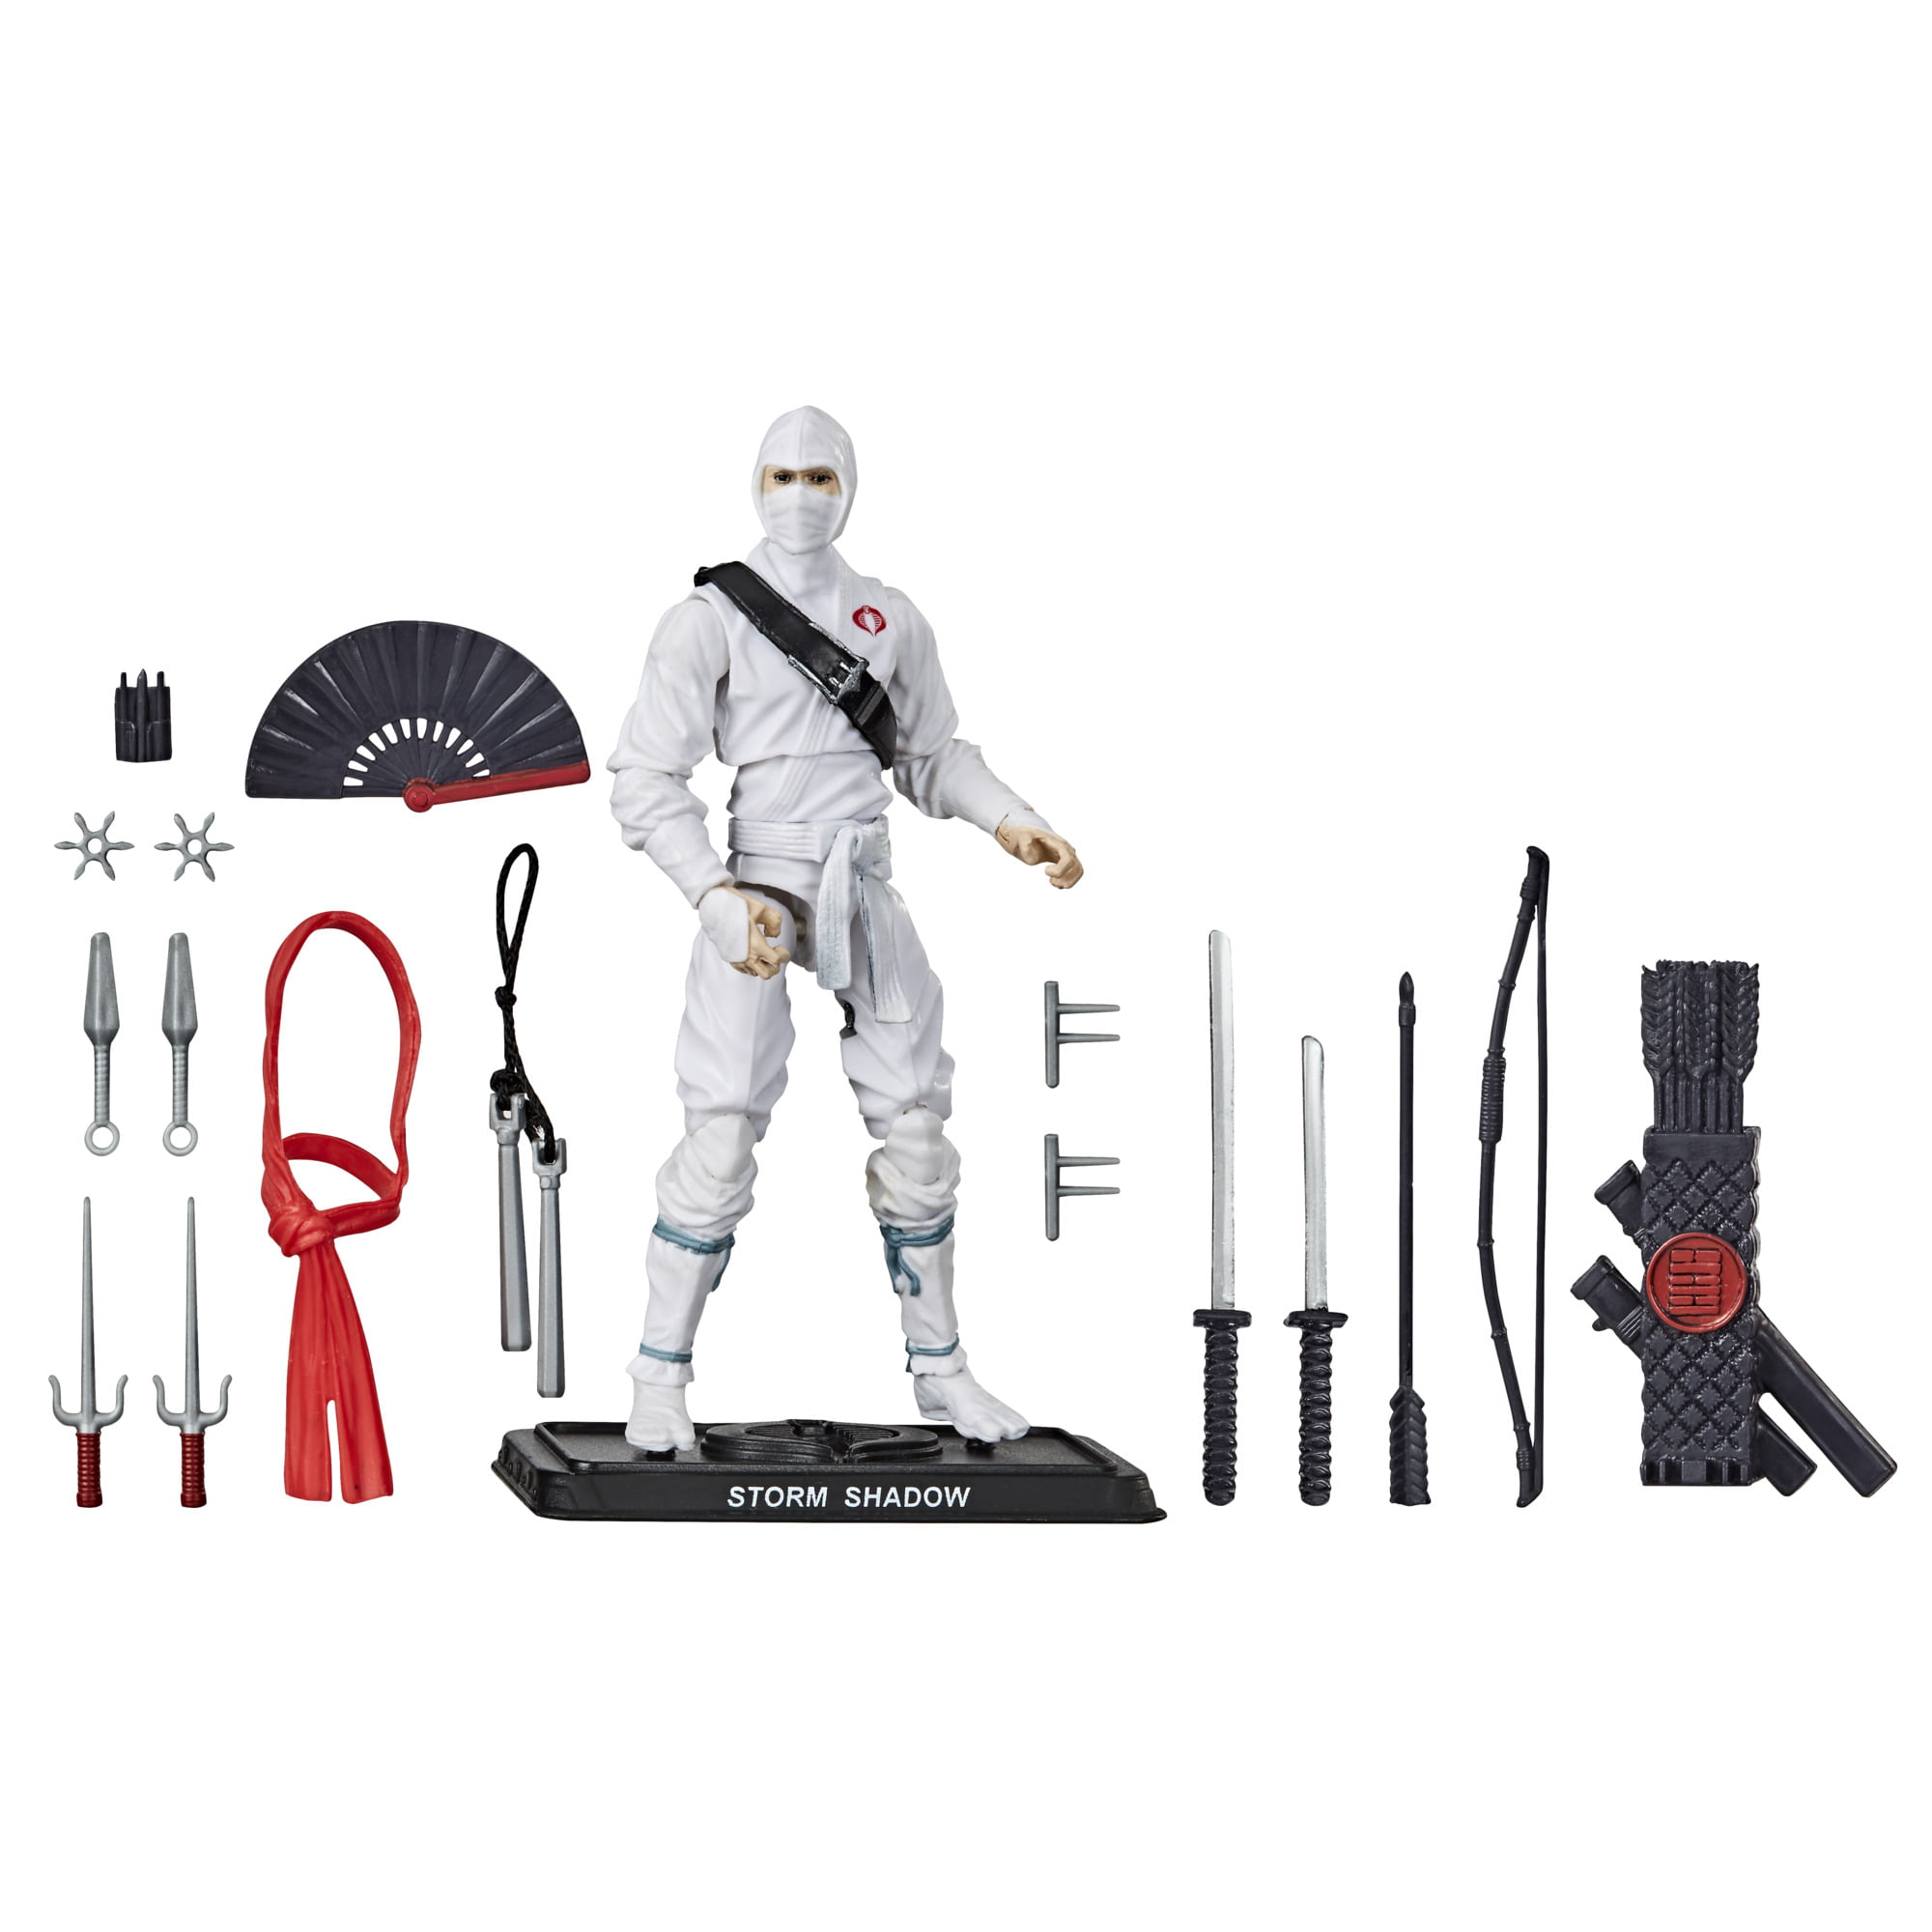 G.I. Joe Retro Collection Storm Shadow 3.75-inch Action Figure, Includes 14 Accessories